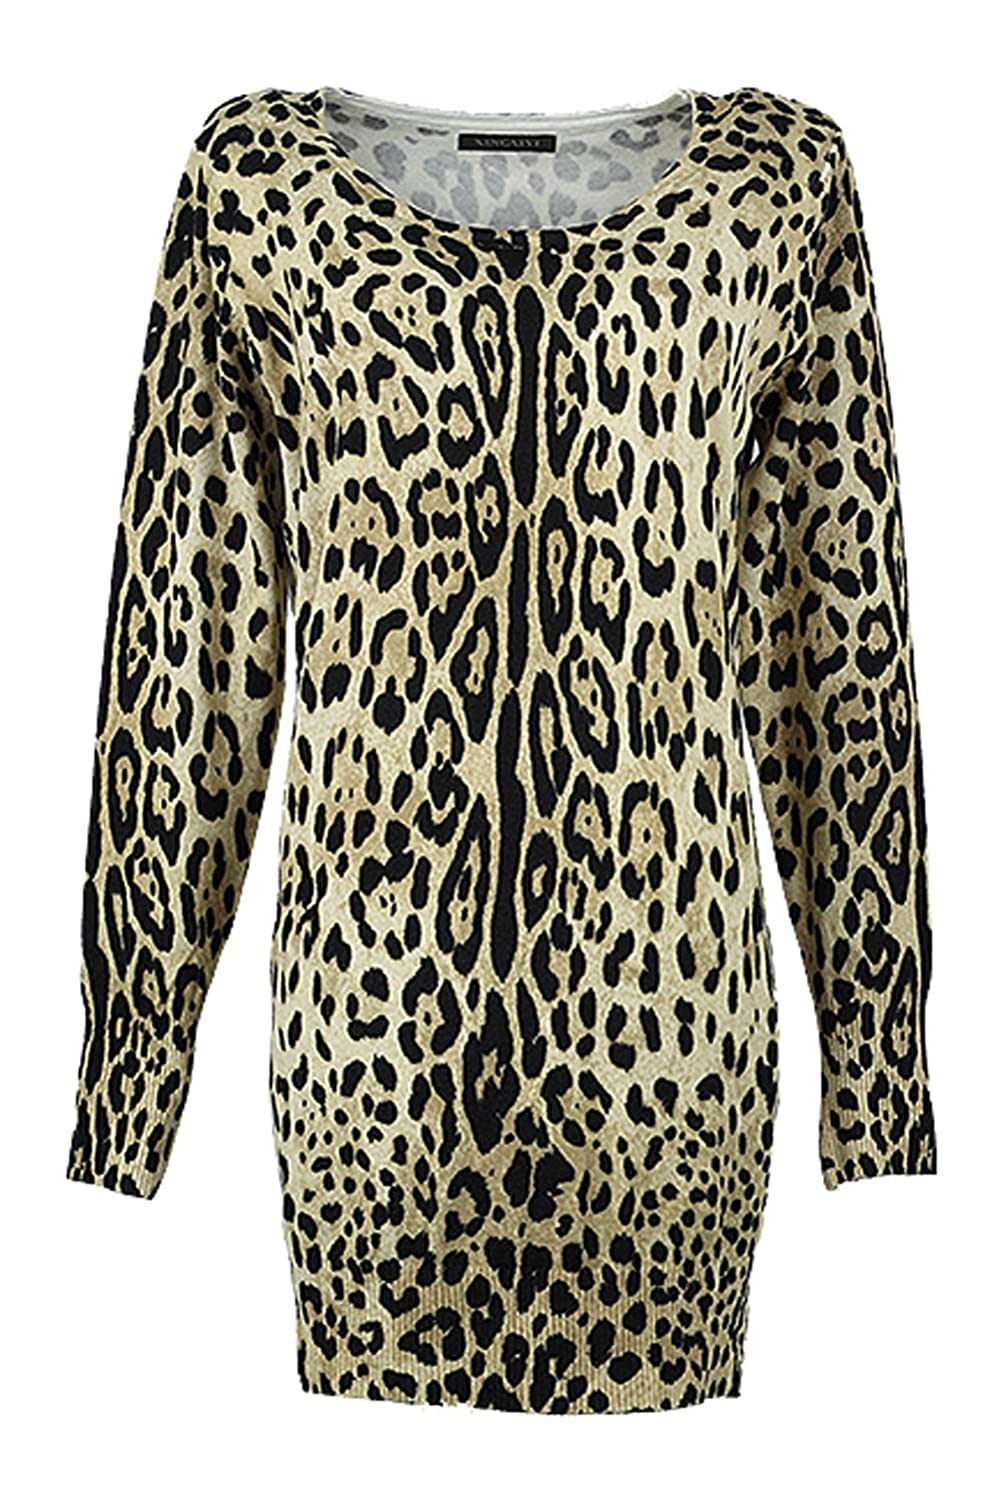 Haogo Women's Zebra Printed Cotton Knitted Long Length Pullover Cardigans Sweater